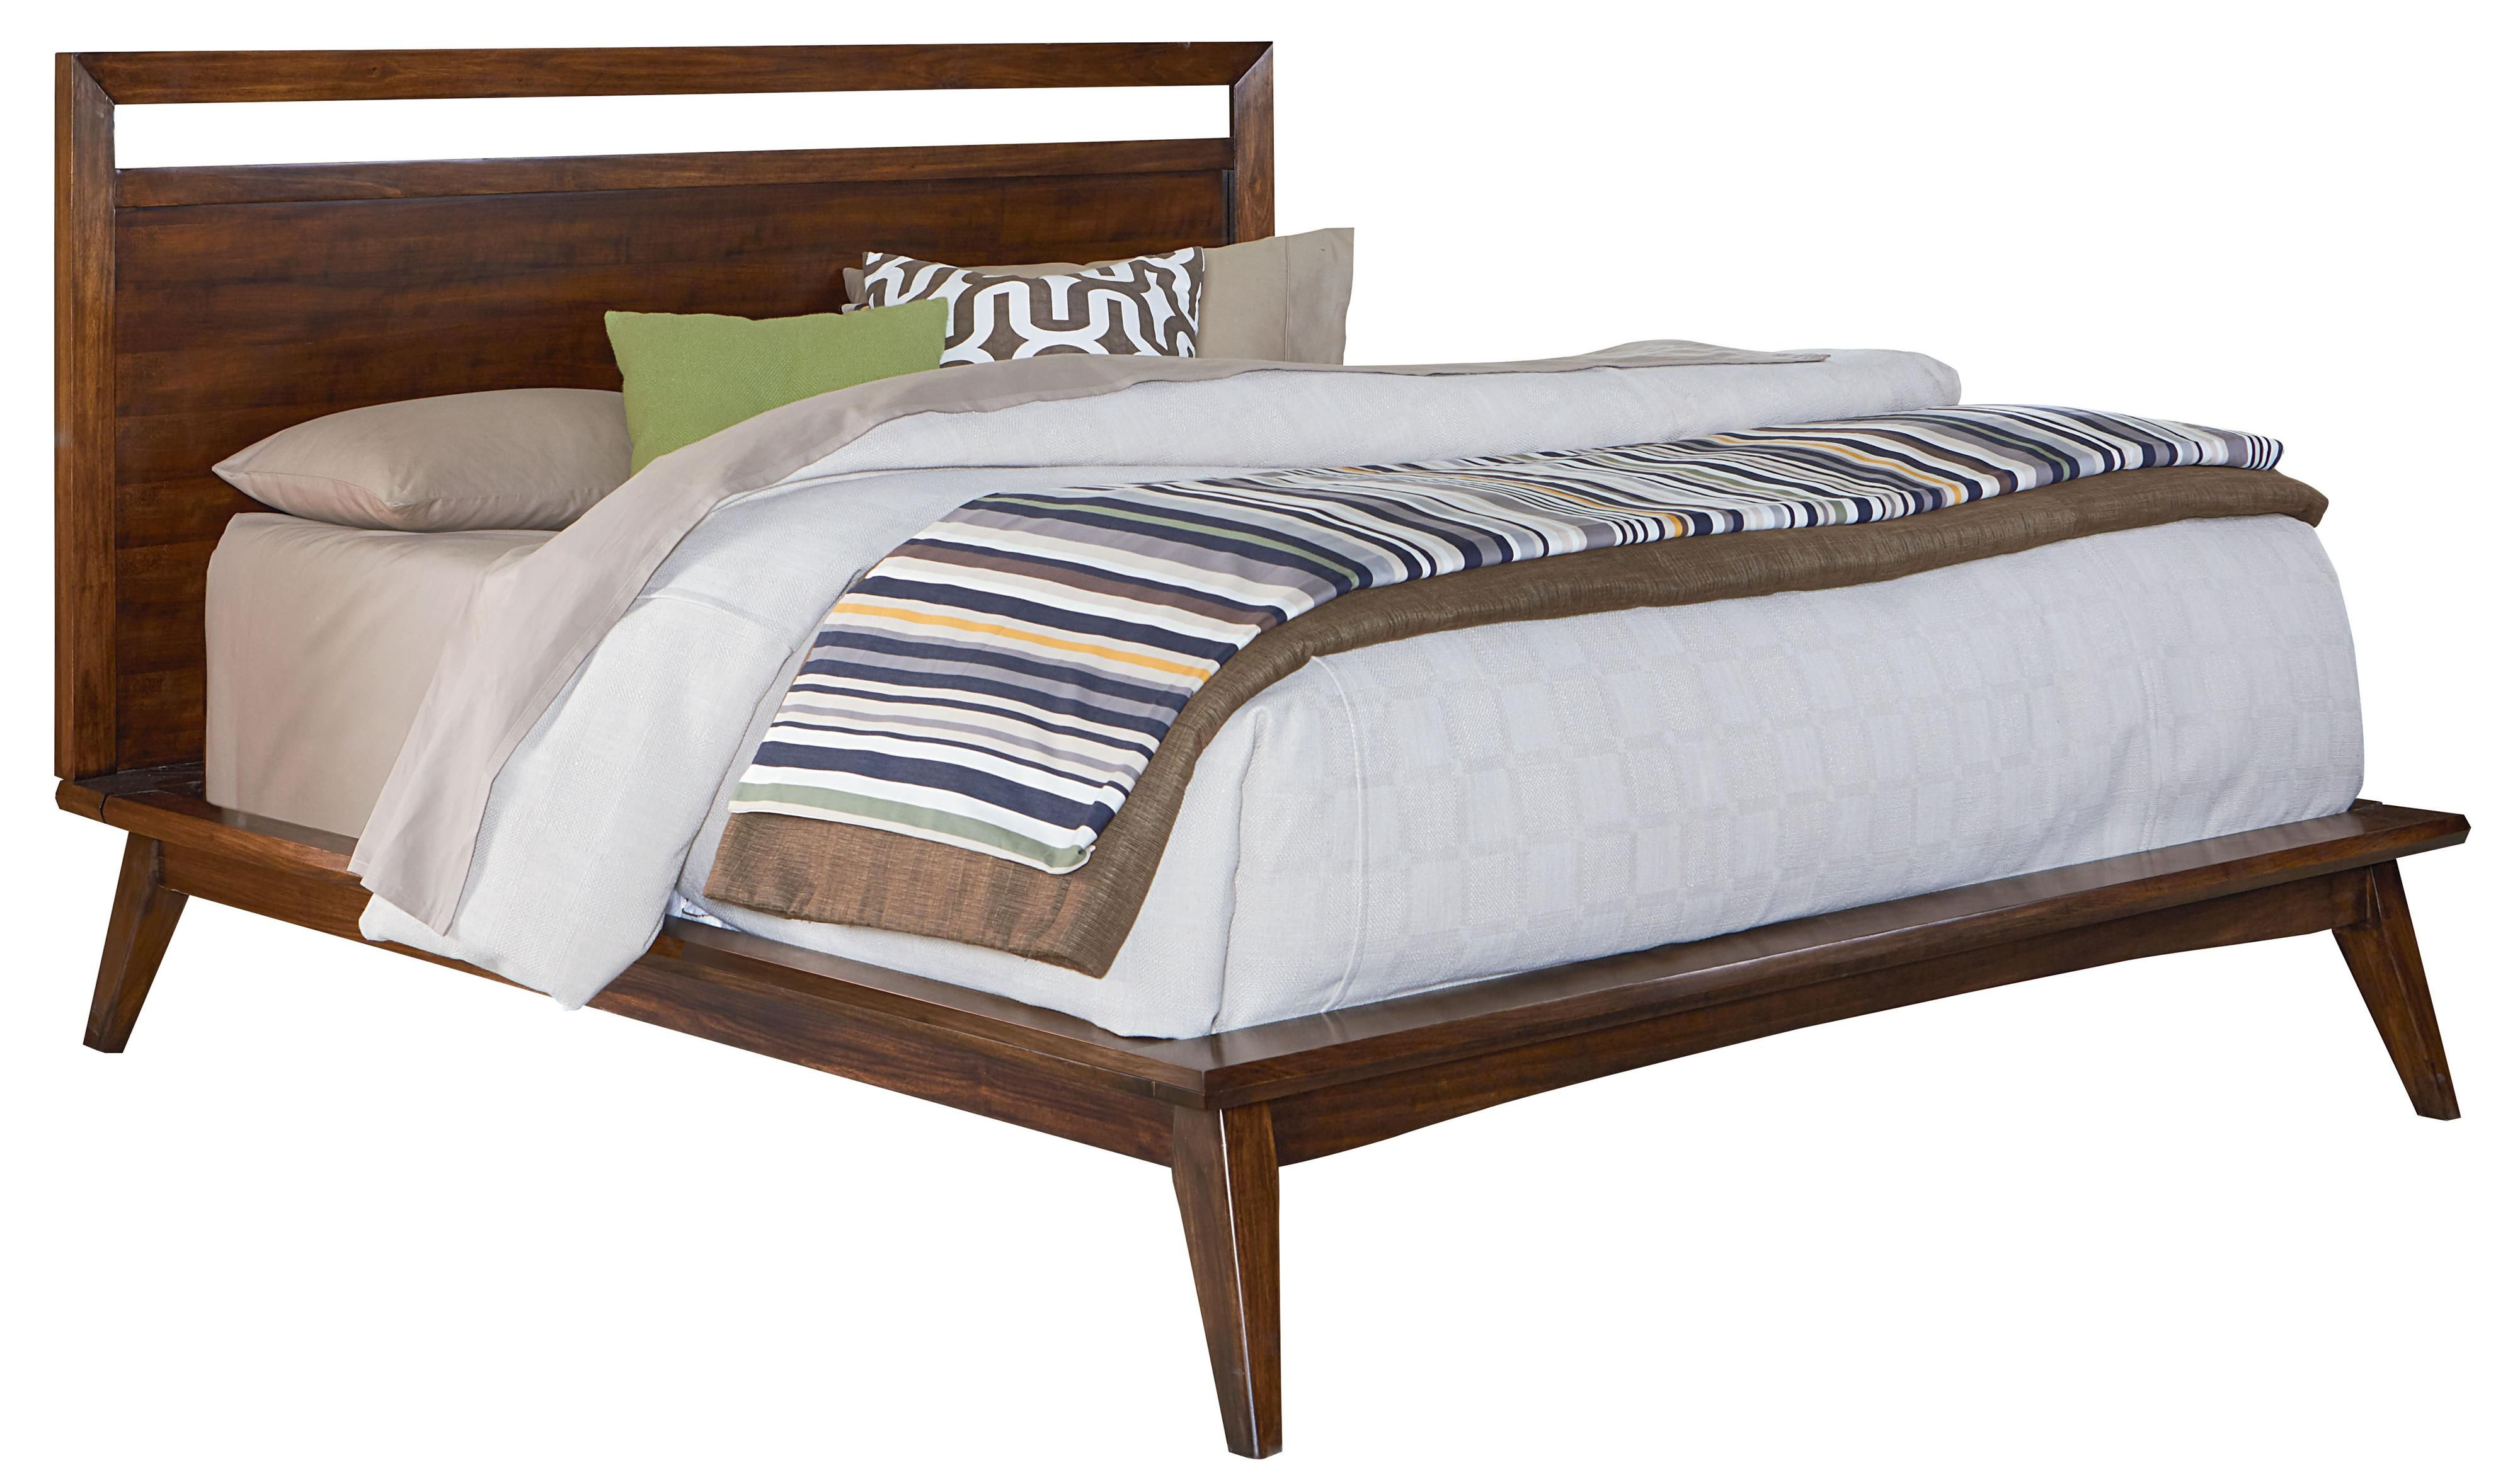 Gray Suede Fabric Upholstered Bed Frame With King Size Headboard